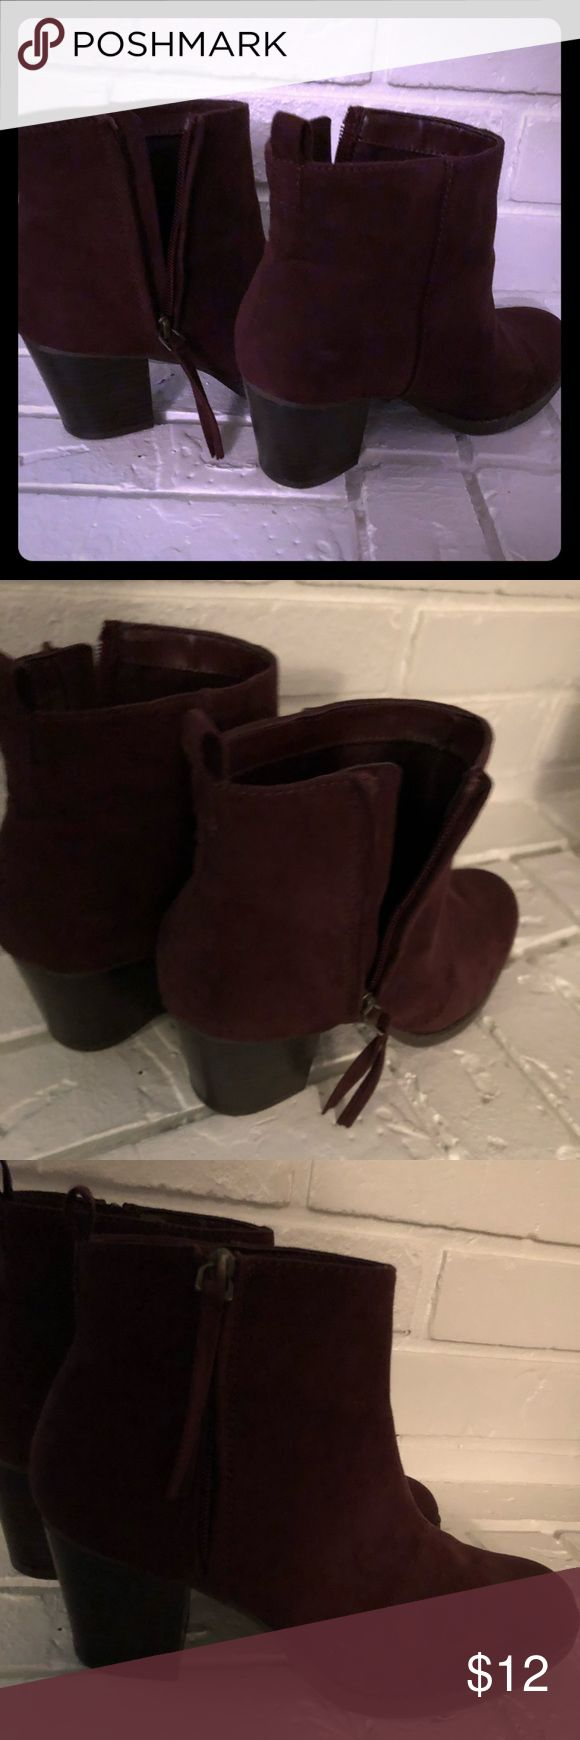 Burgundy Old Navy Ankle Boots Super cute burgundy suede zip-up ankle boots.  Boots worn once, as pic shows barely there wear No scuffs or marks in suede. Old Navy Shoes Espadrilles